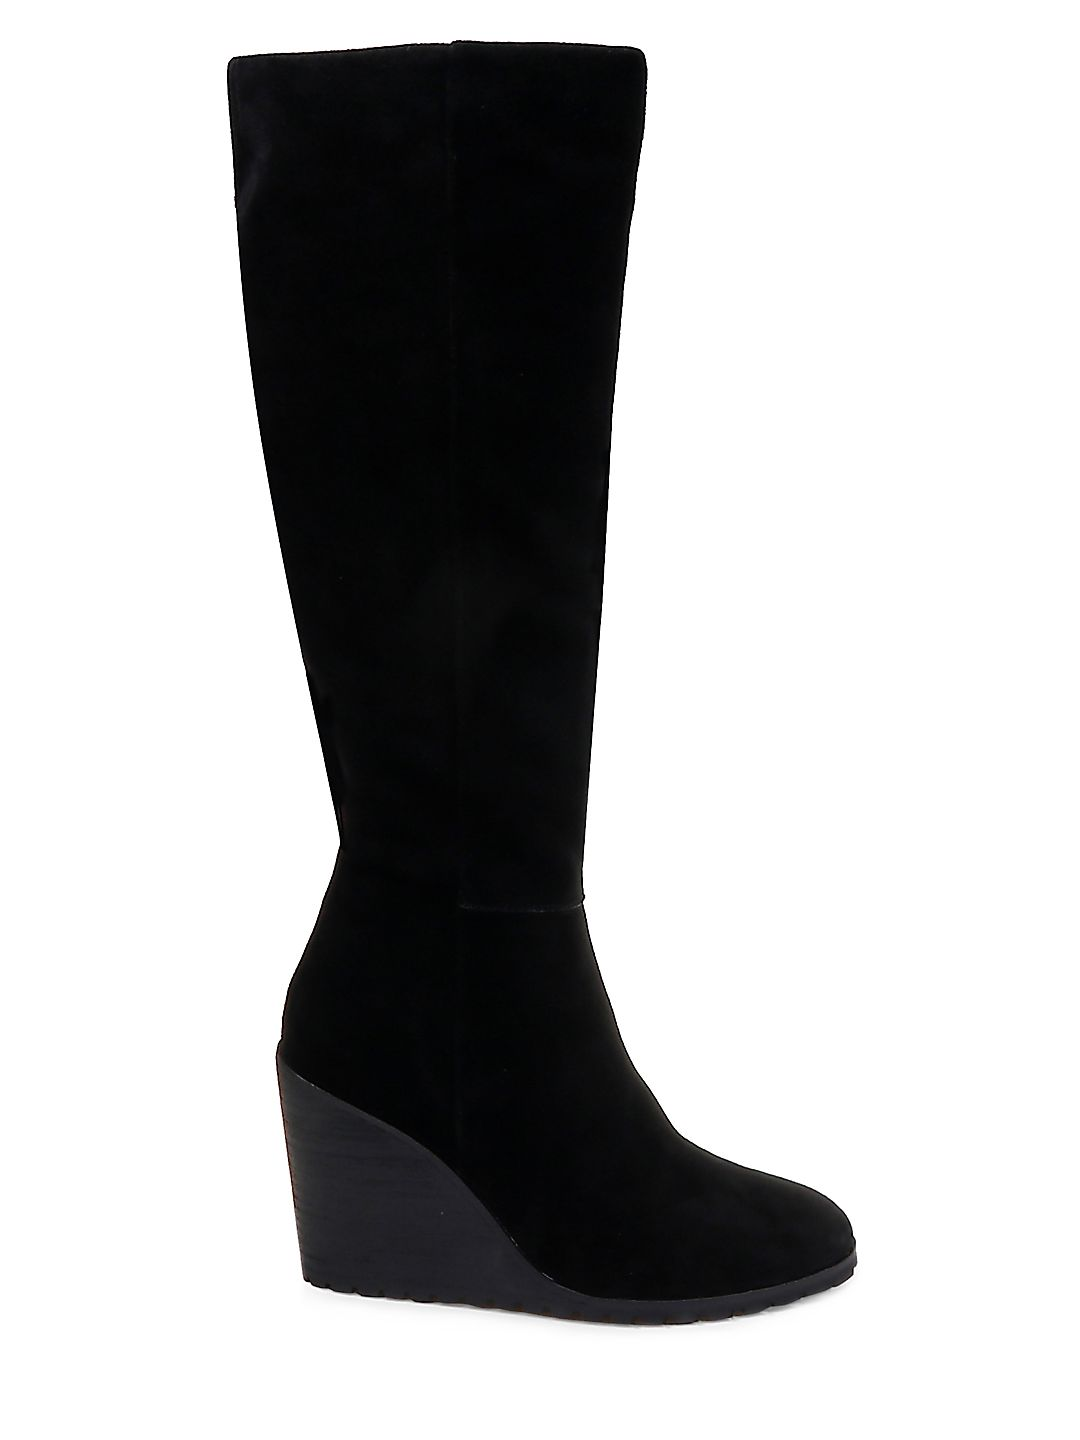 Suede Knee-High Wedge Boots